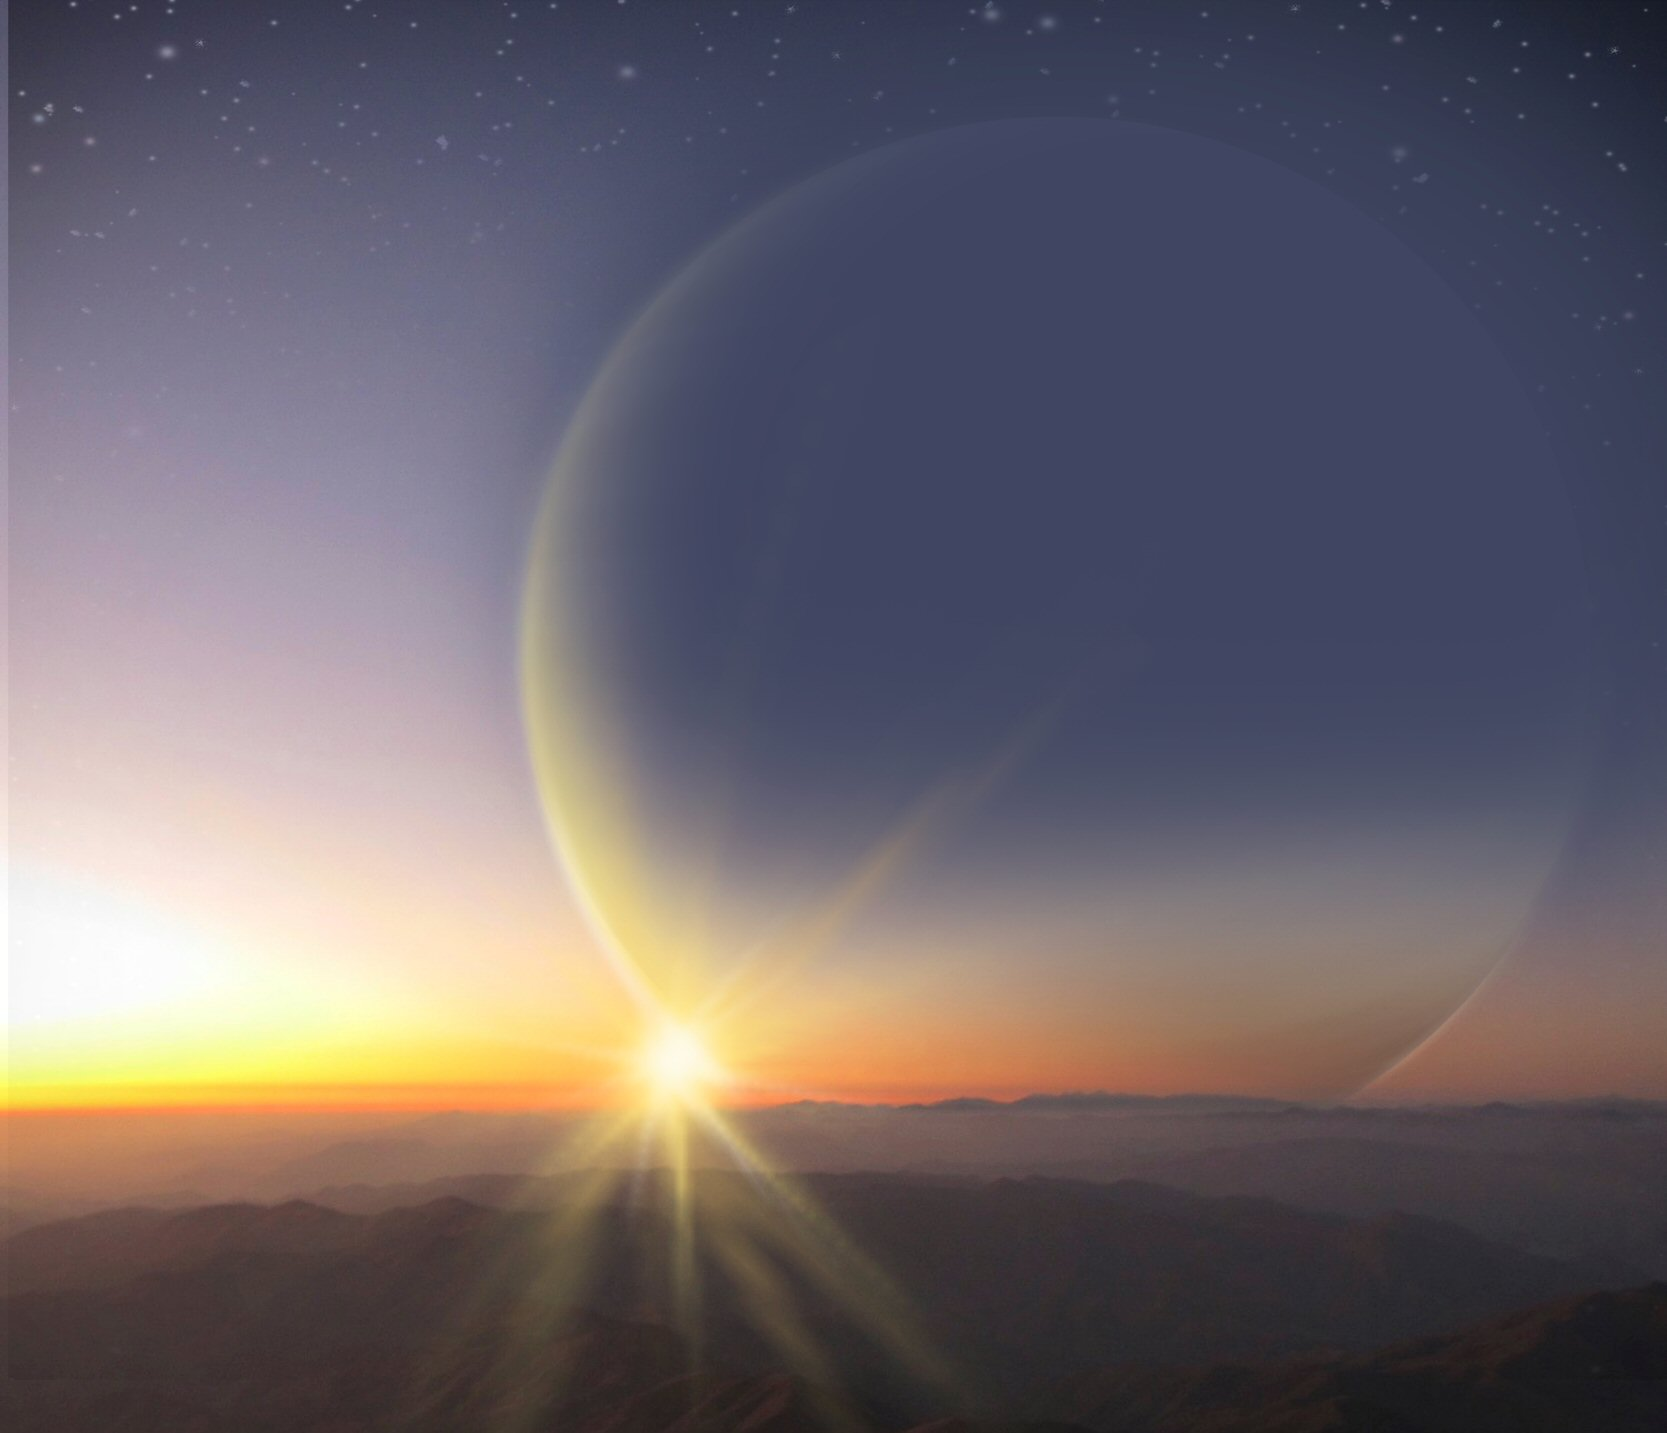 15 New Planet Candidates in Habitable Zones Discovered | Space